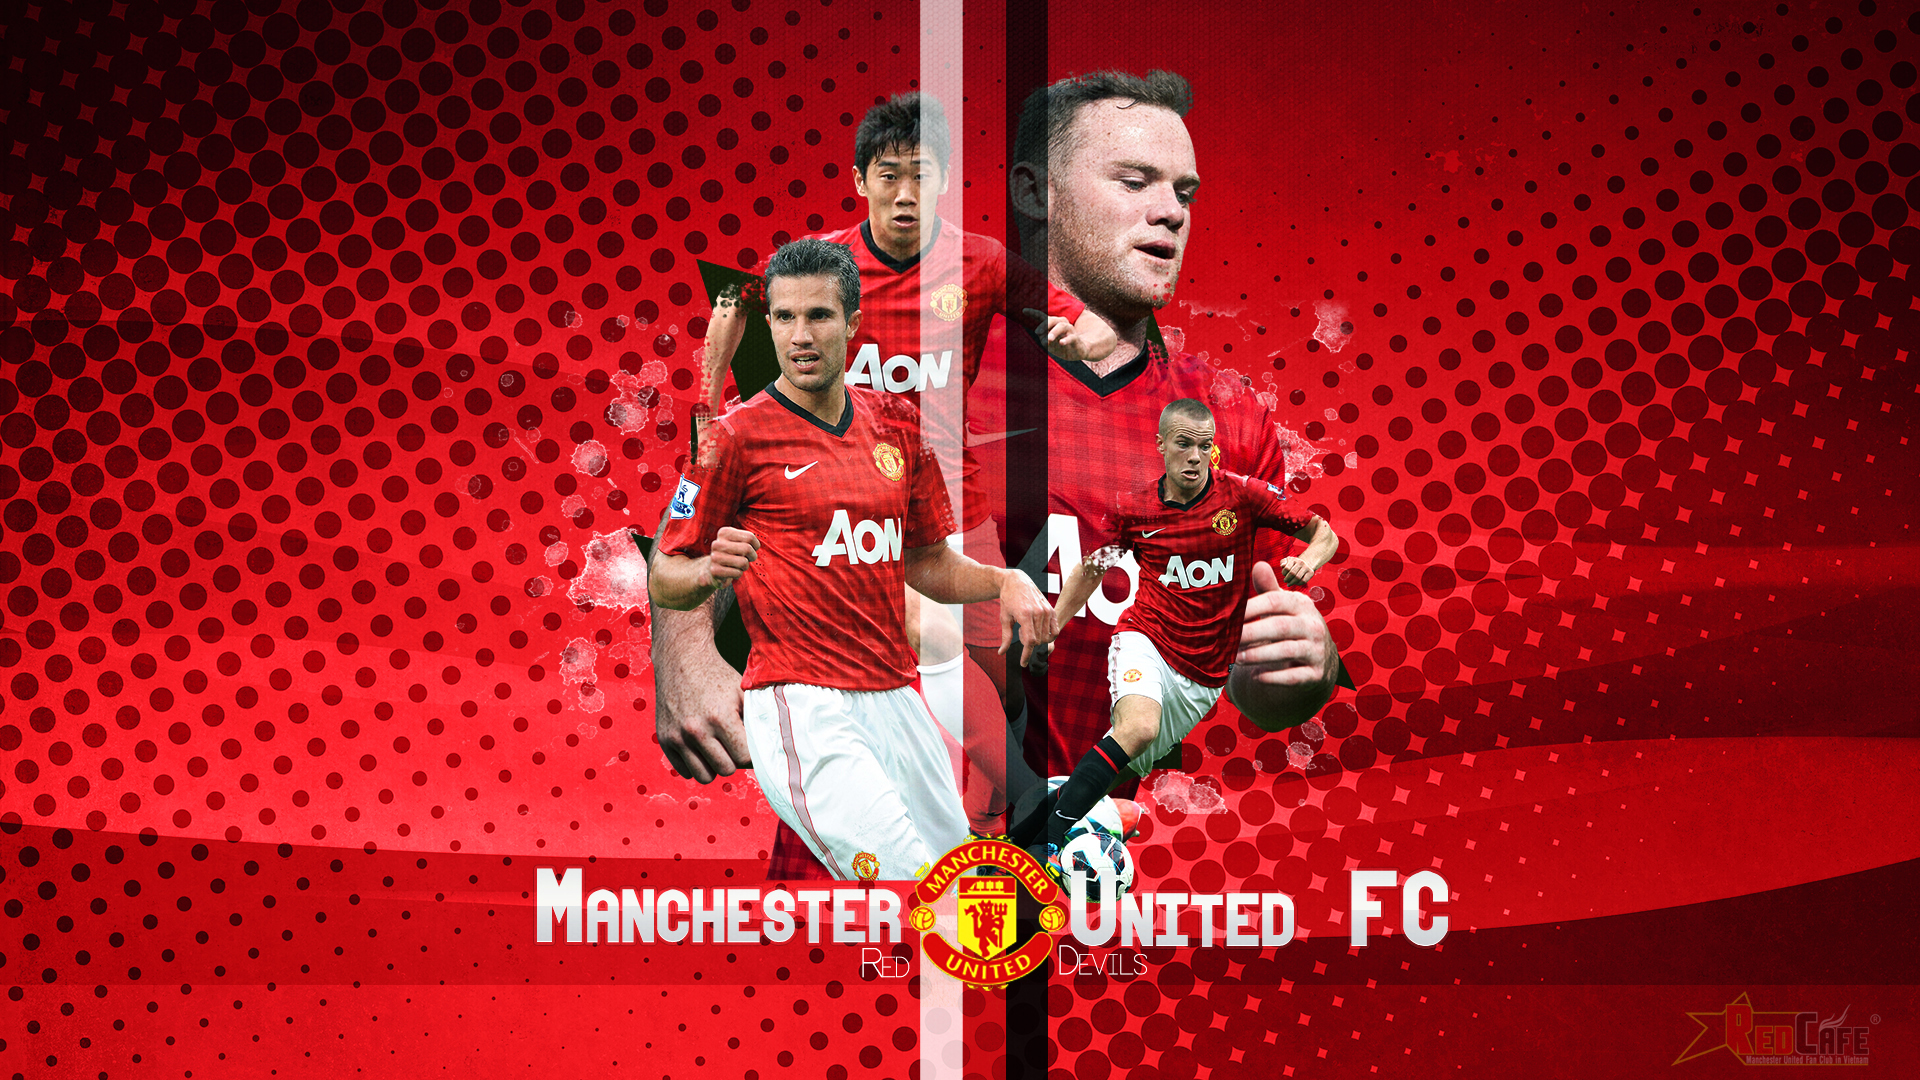 manchester united wallpaper iphone walldiskpaper manchester united wallpaper iphone